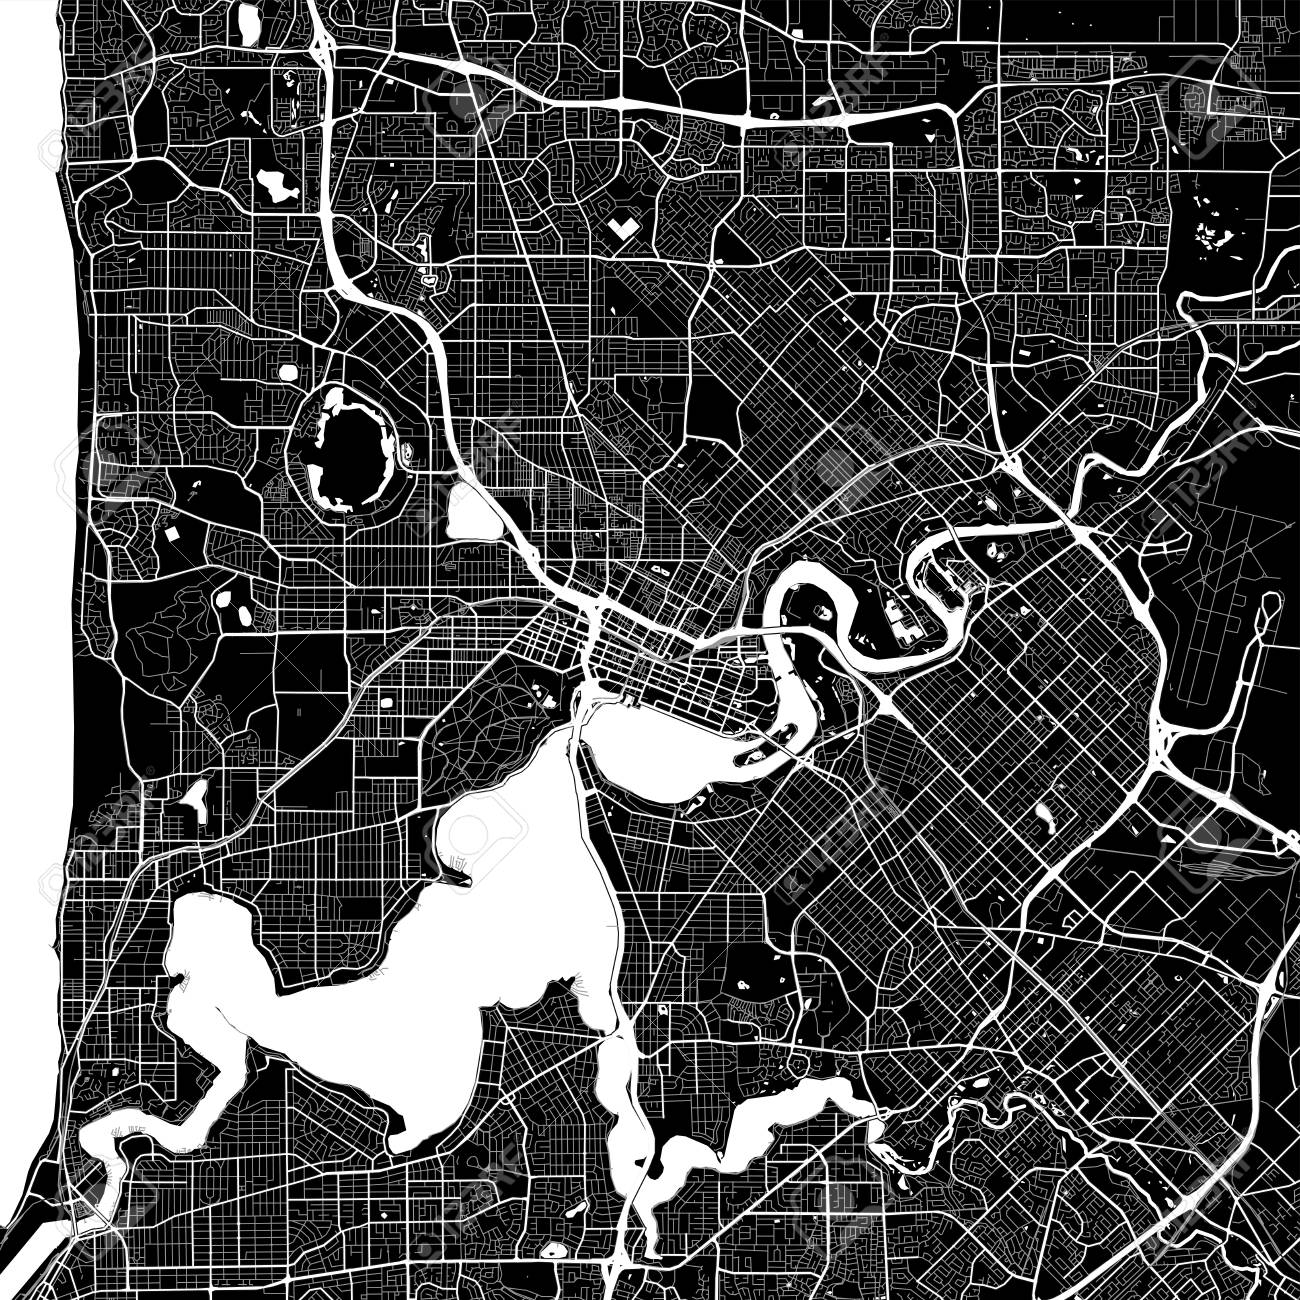 Area Map Of Perth, Australia. Dark Background Version For ... Map Of Perth Australia Area on perthshire scotland map, australia and surrounding area map, western region map, perth washington map, melbourne map, sydney map, seoul south korea area map, paris france area map, rail map, australia industry map, perth scotland map, perth uk map, guadalajara mexico area map, new zealand australia map, medford oregon area map, tasmania map, brisbane australia area map, anchorage alaska area map, janus rock australia map, glasgow scotland area map,